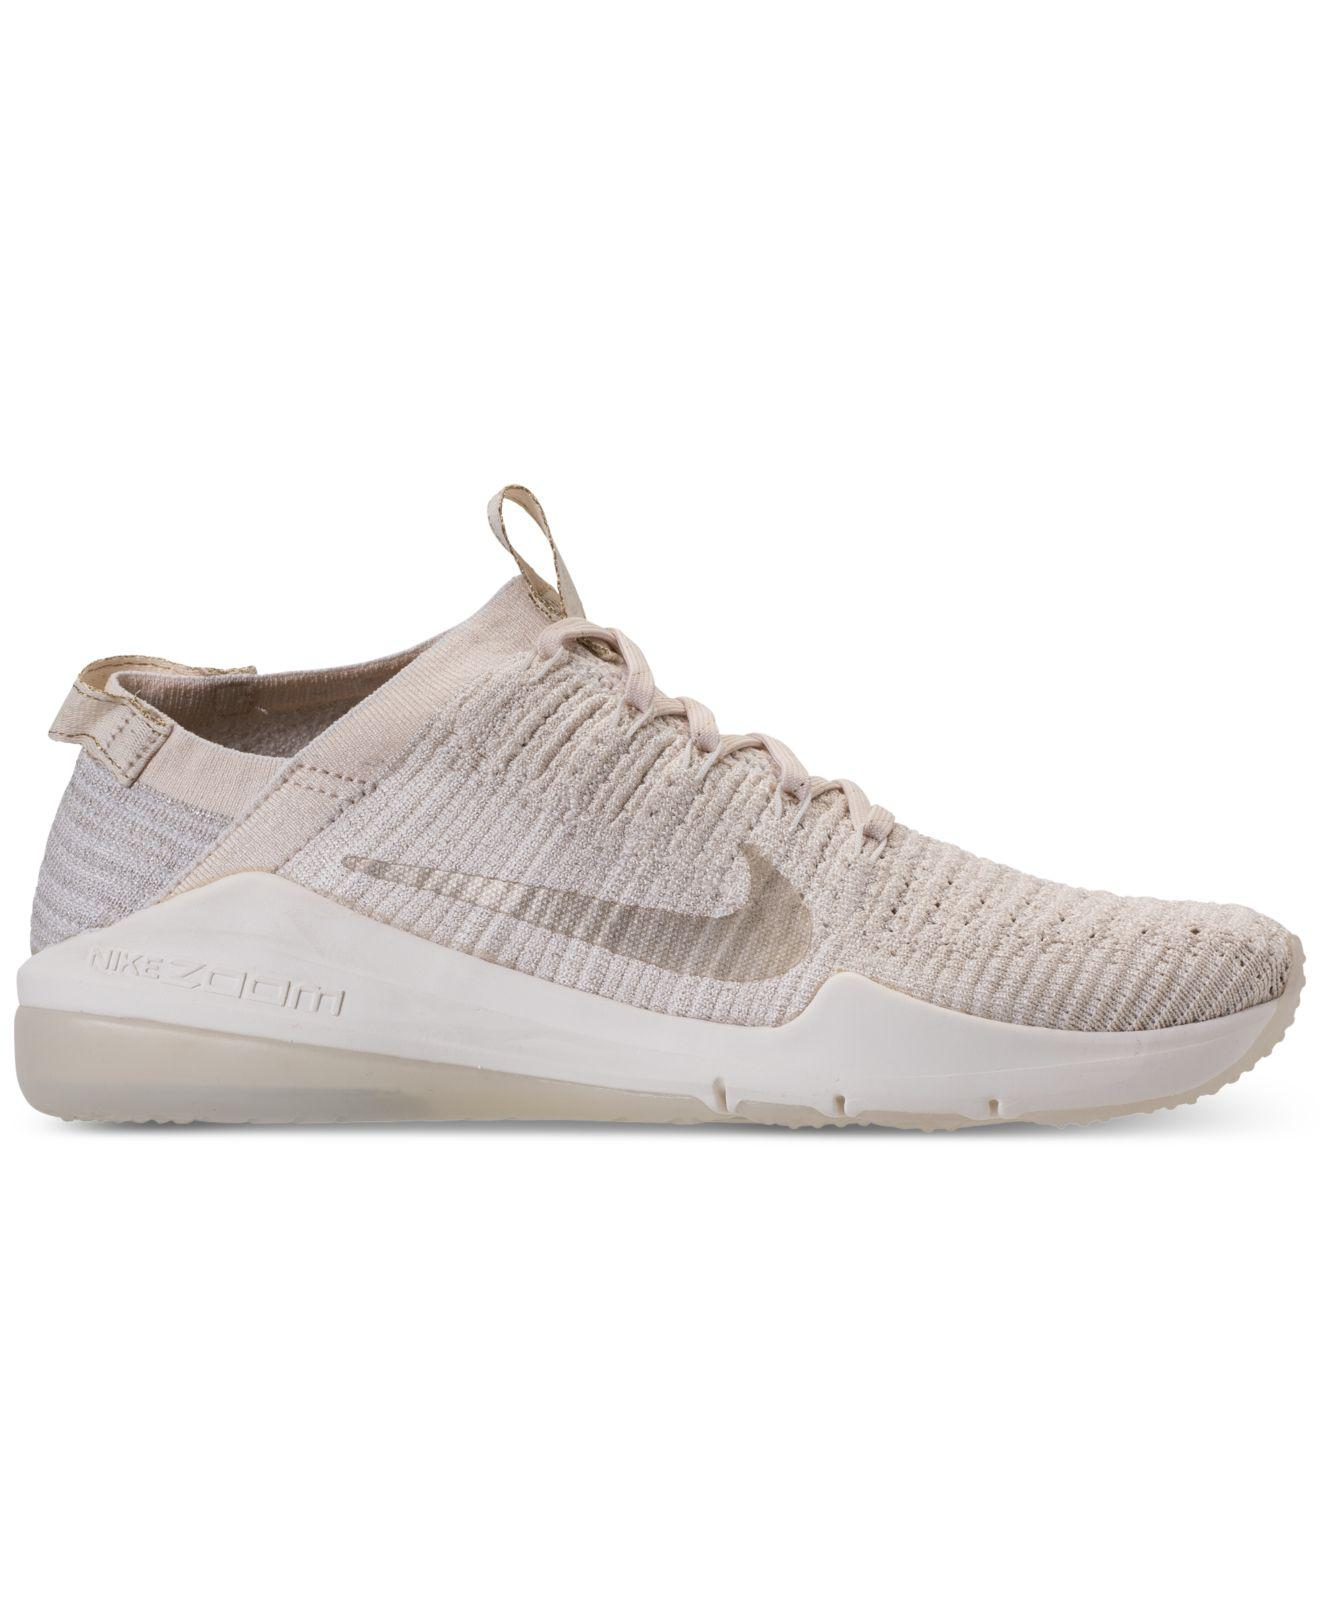 5662128de370f6 Lyst - Nike Air Zoom Fearless Flyknit 2 Champagne Running Sneakers ...